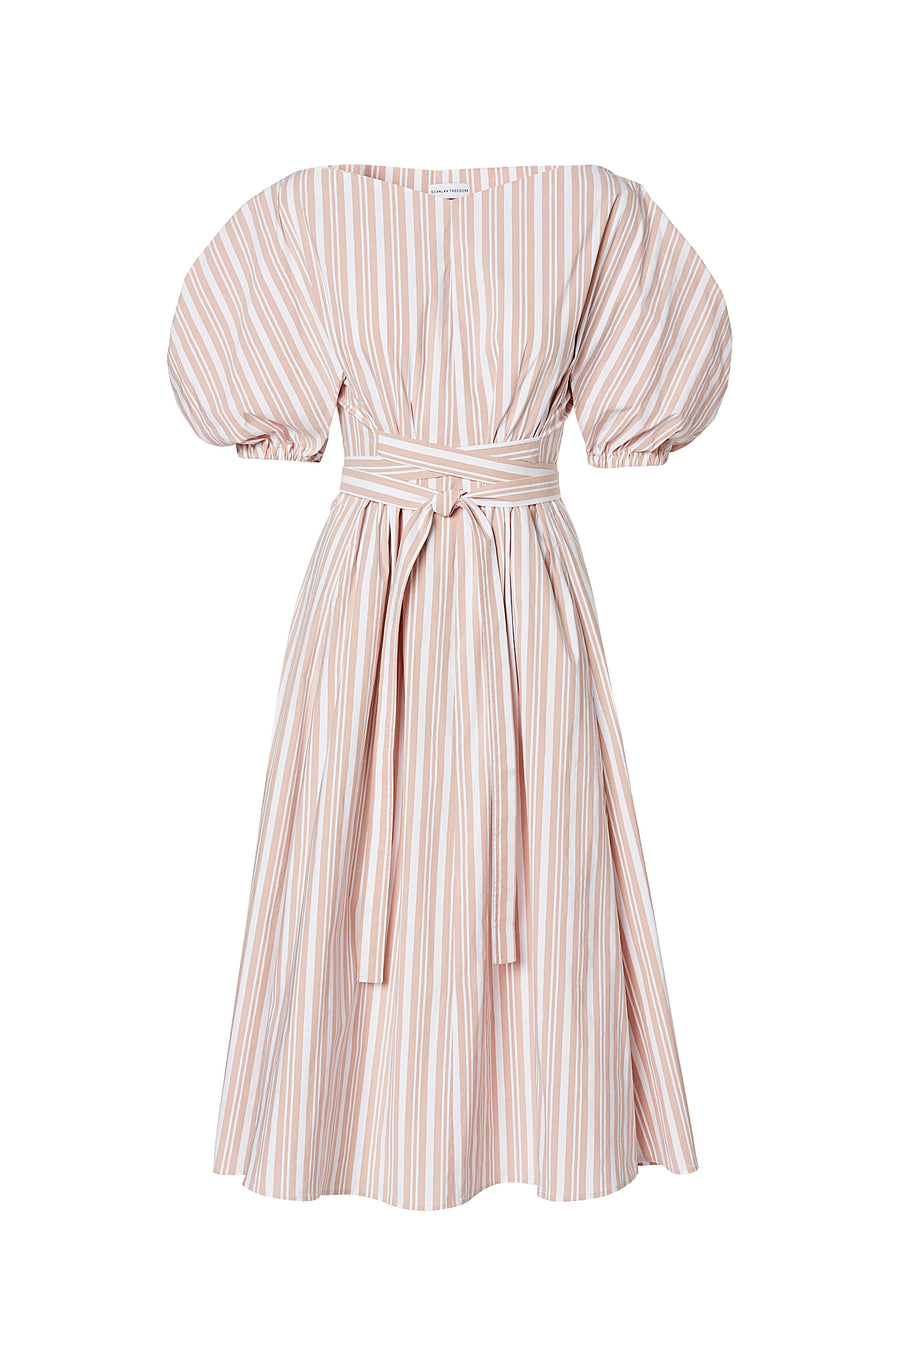 STRIPED COCOON SLEEVE DRESS, PEACH color